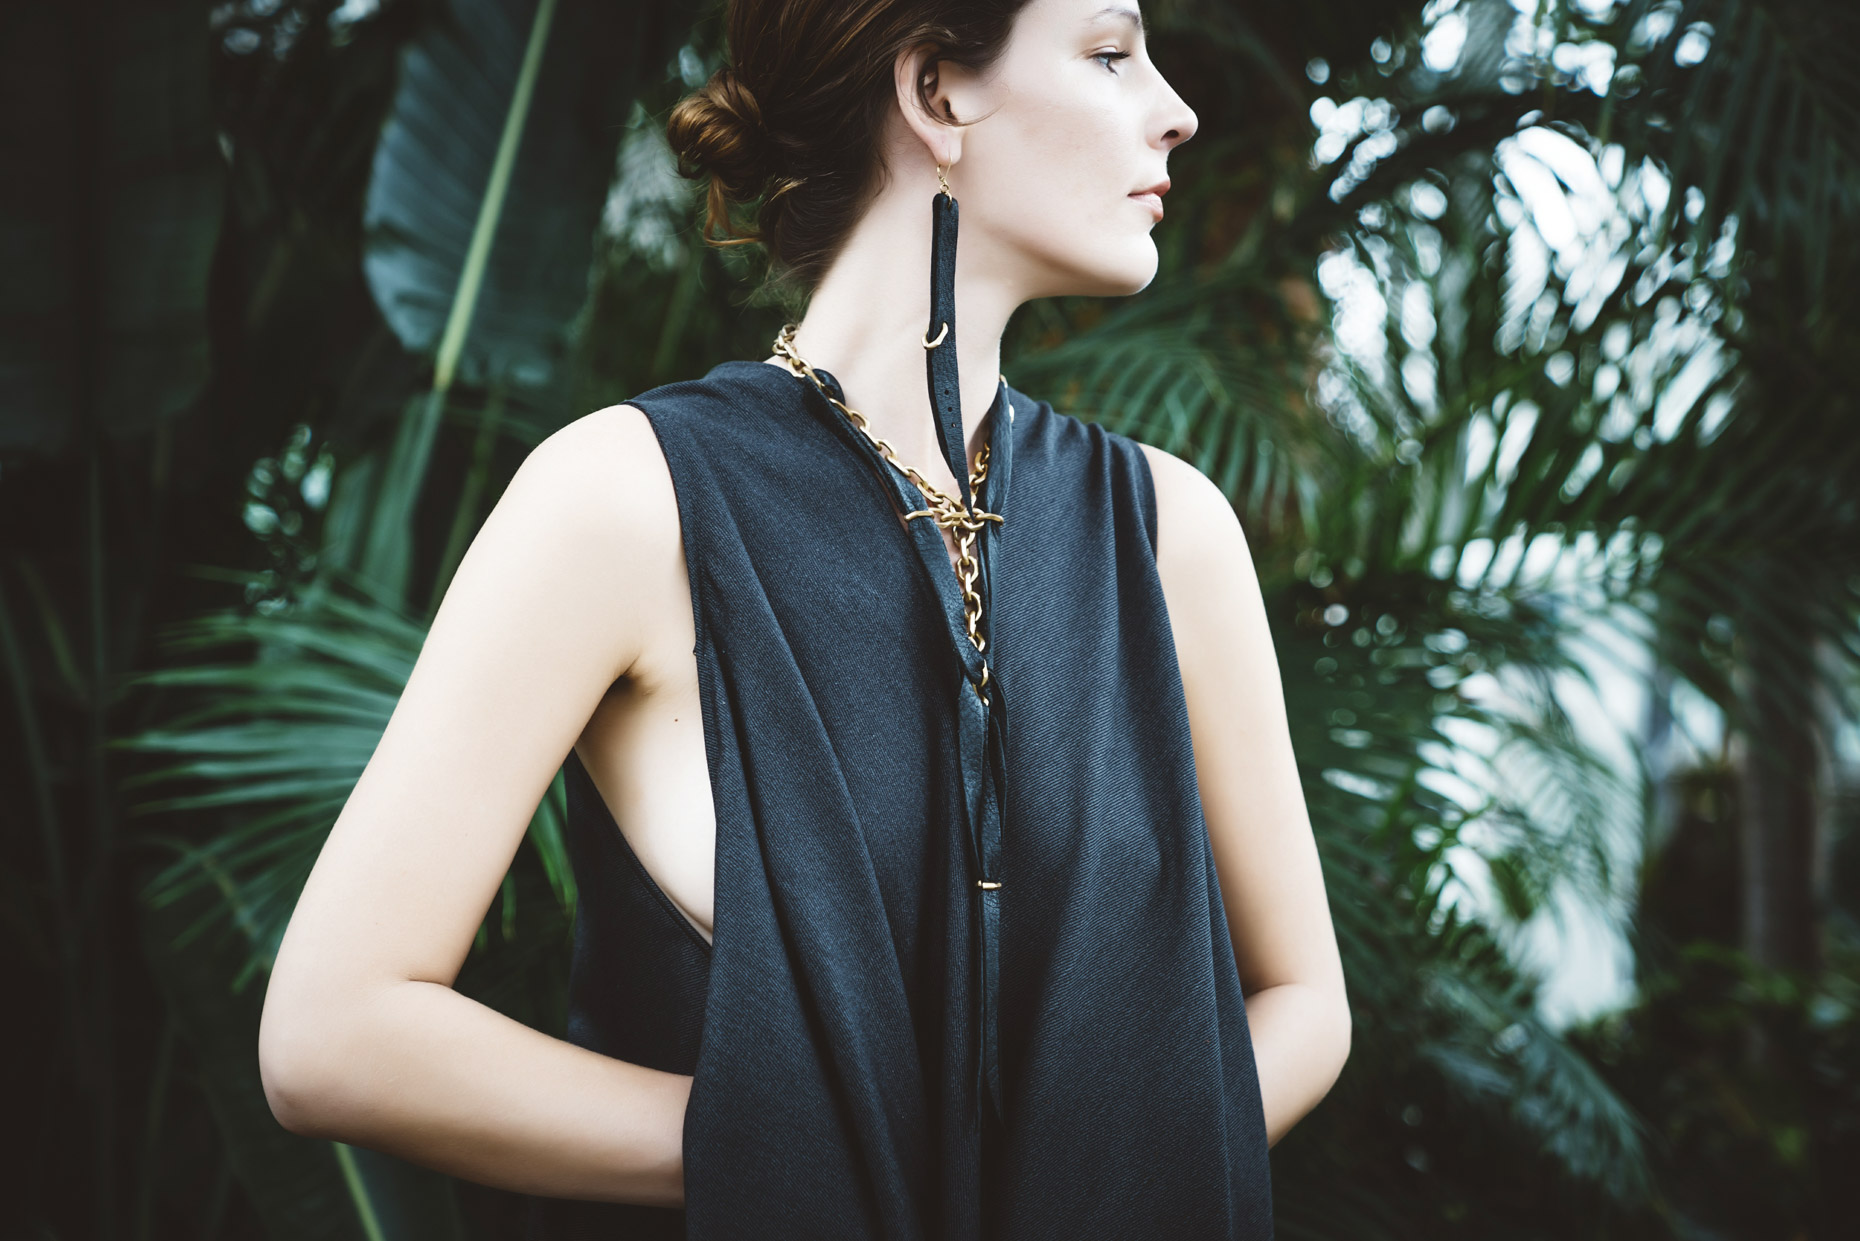 Profile of woman wearing black leather and brass necklace